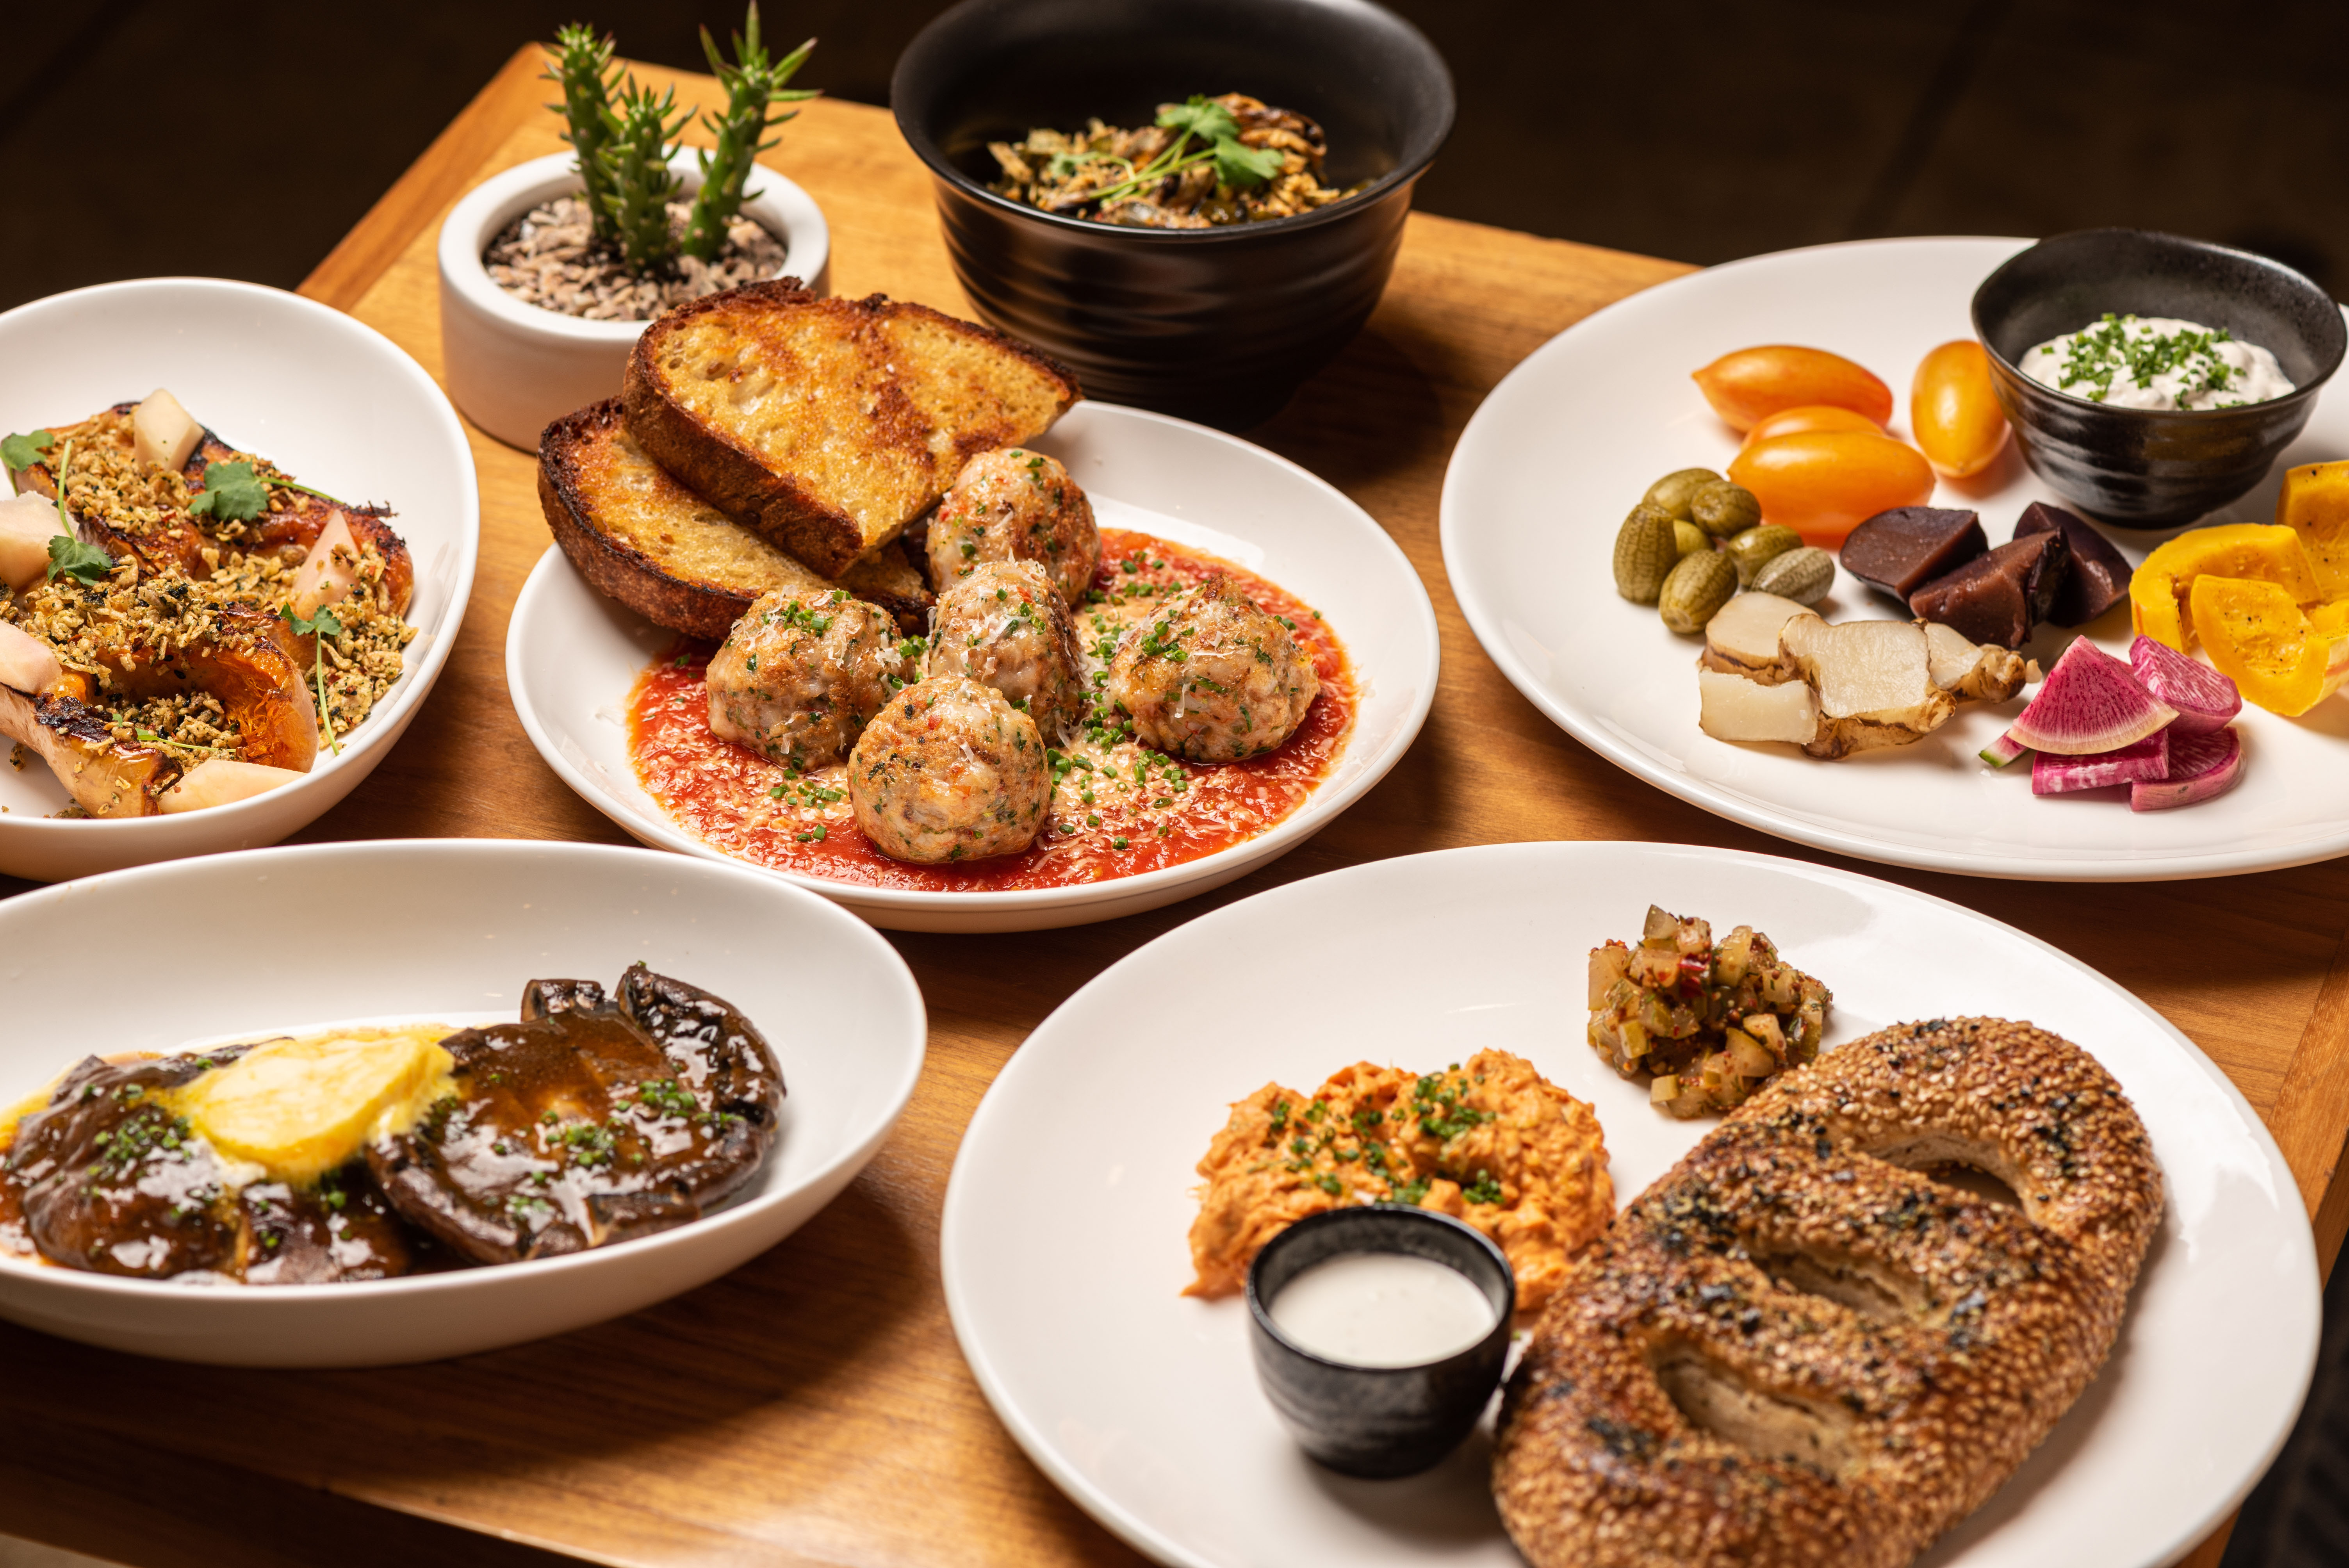 A side-tilted view of a table filled with dinner food including vegetables and meatballs.